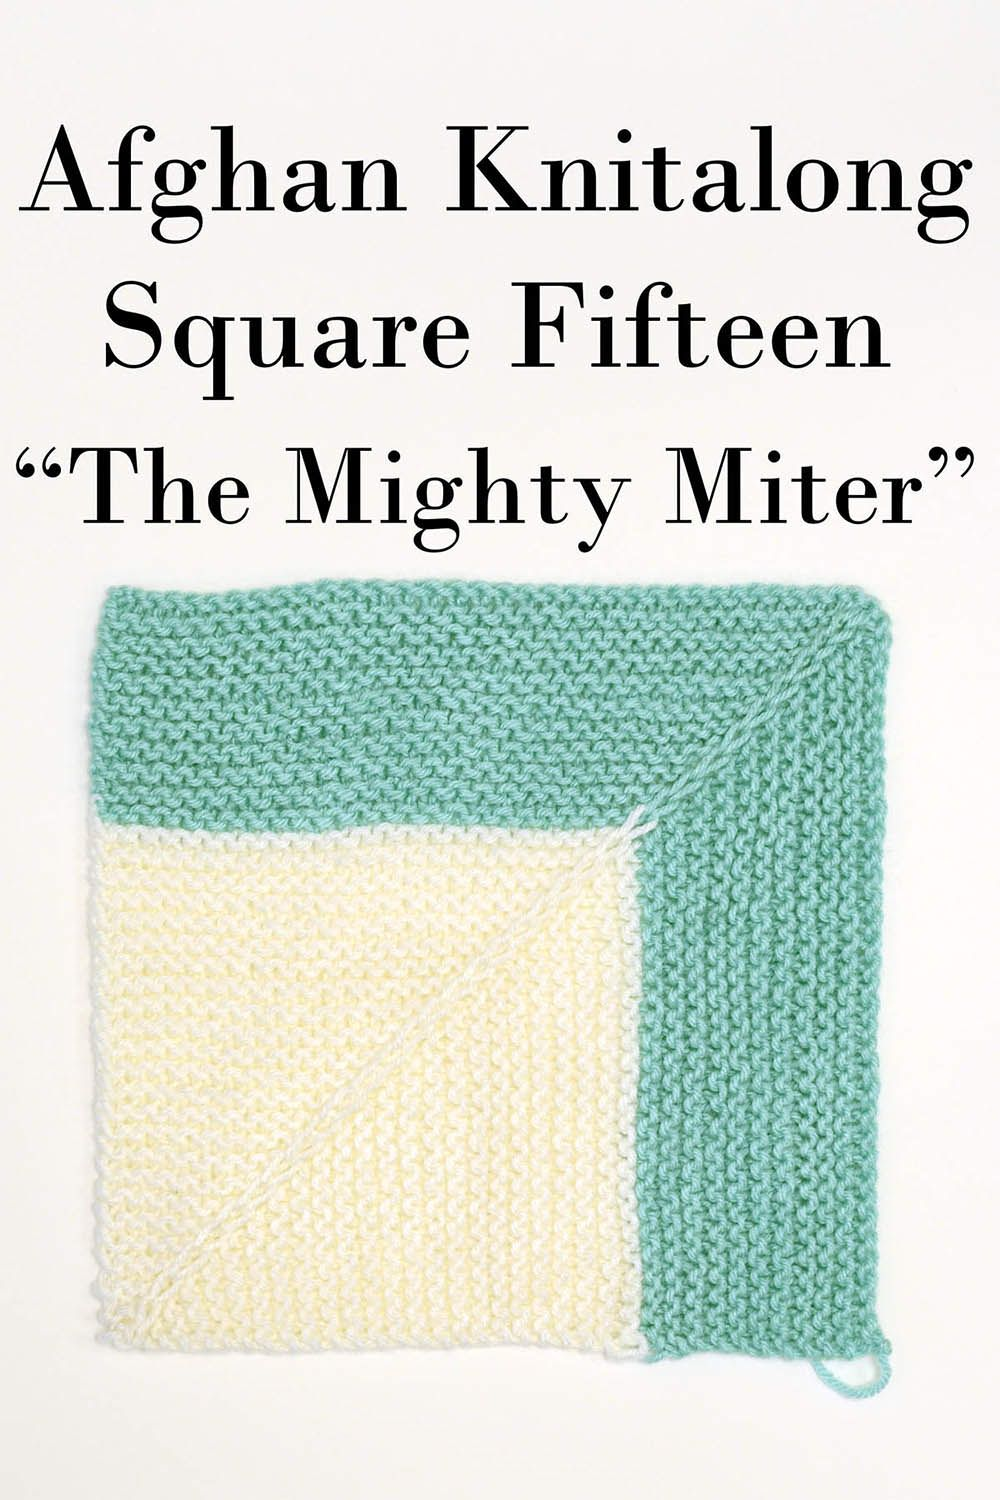 Afghan Knitalong Square 15 - The Mighty Miter Pattern Universal Yarn